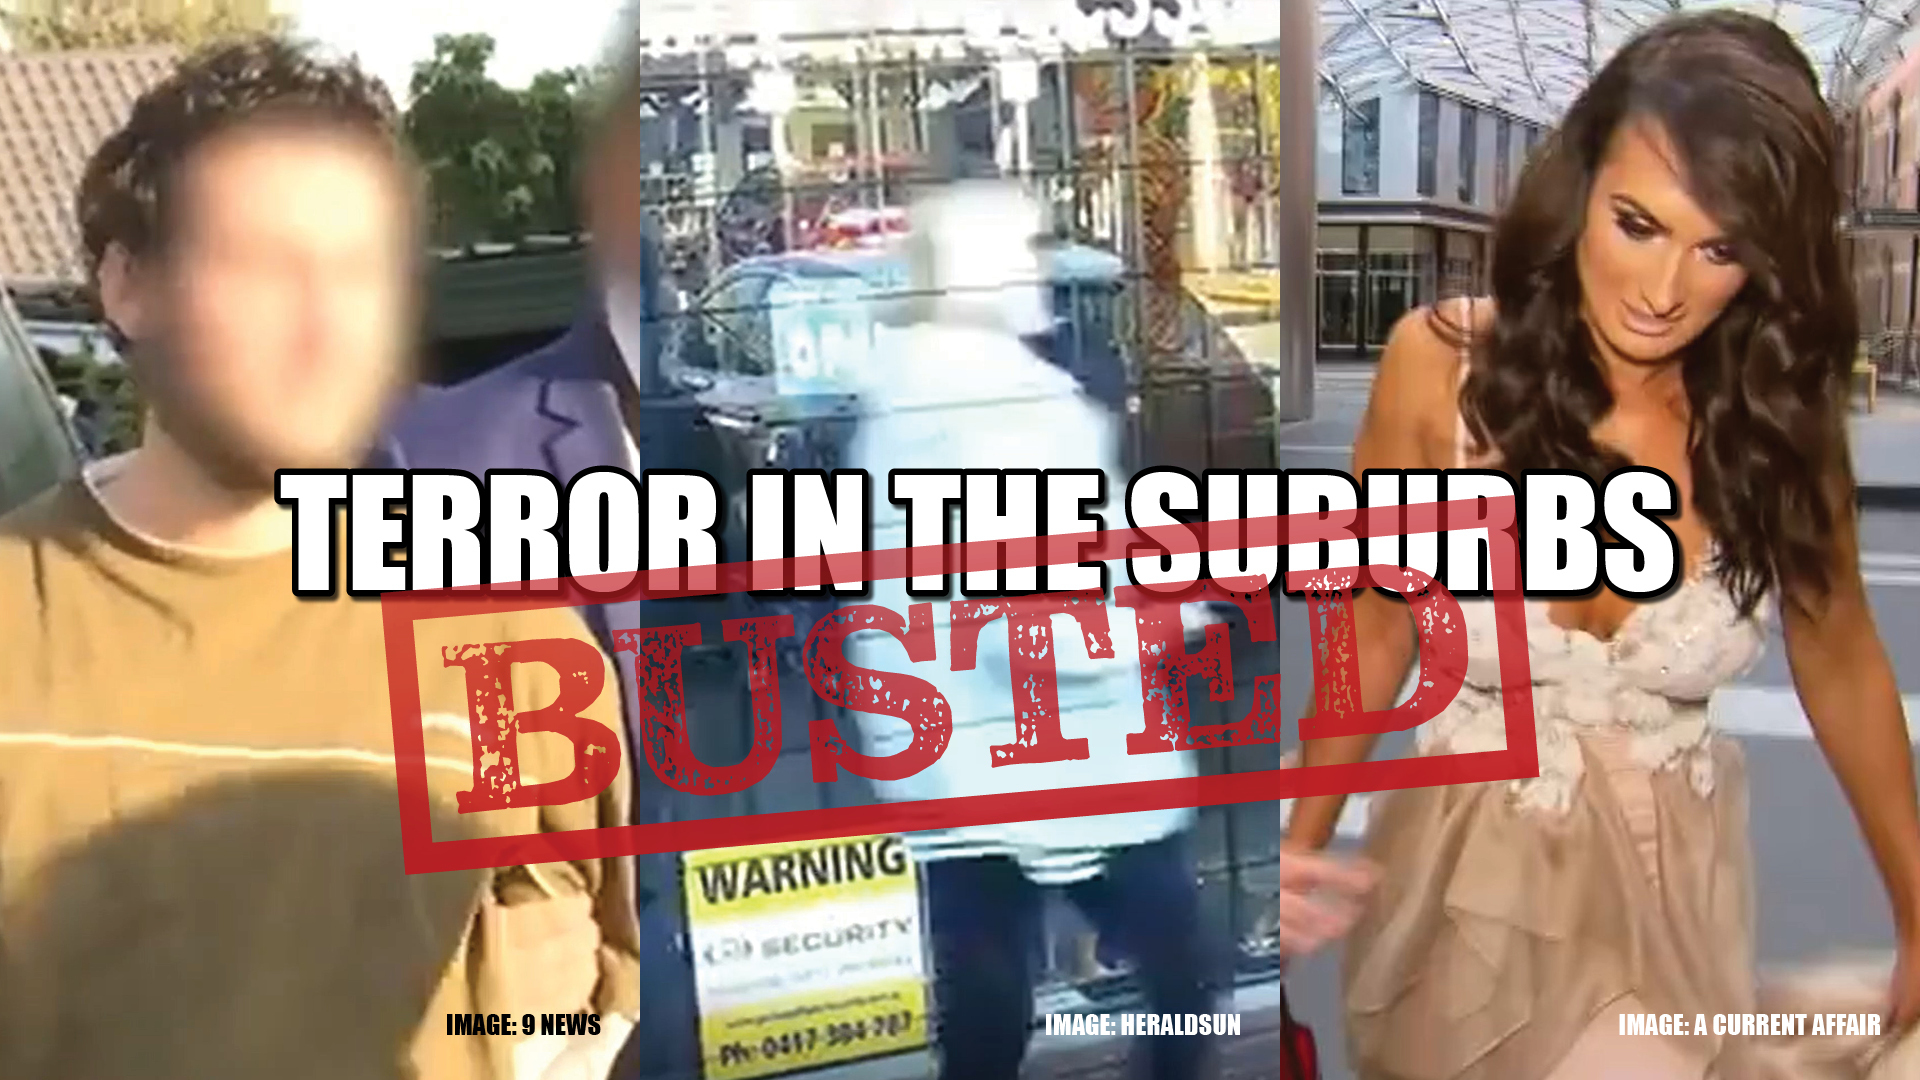 This episode of BUSTED we'll be once again taking a look at the crime stories unfolding in the suburbs of Australian capital cities. From wannabe celebrities to wannabe extremists, we are going to be unpacking some of the top news stories and some you might have missed.